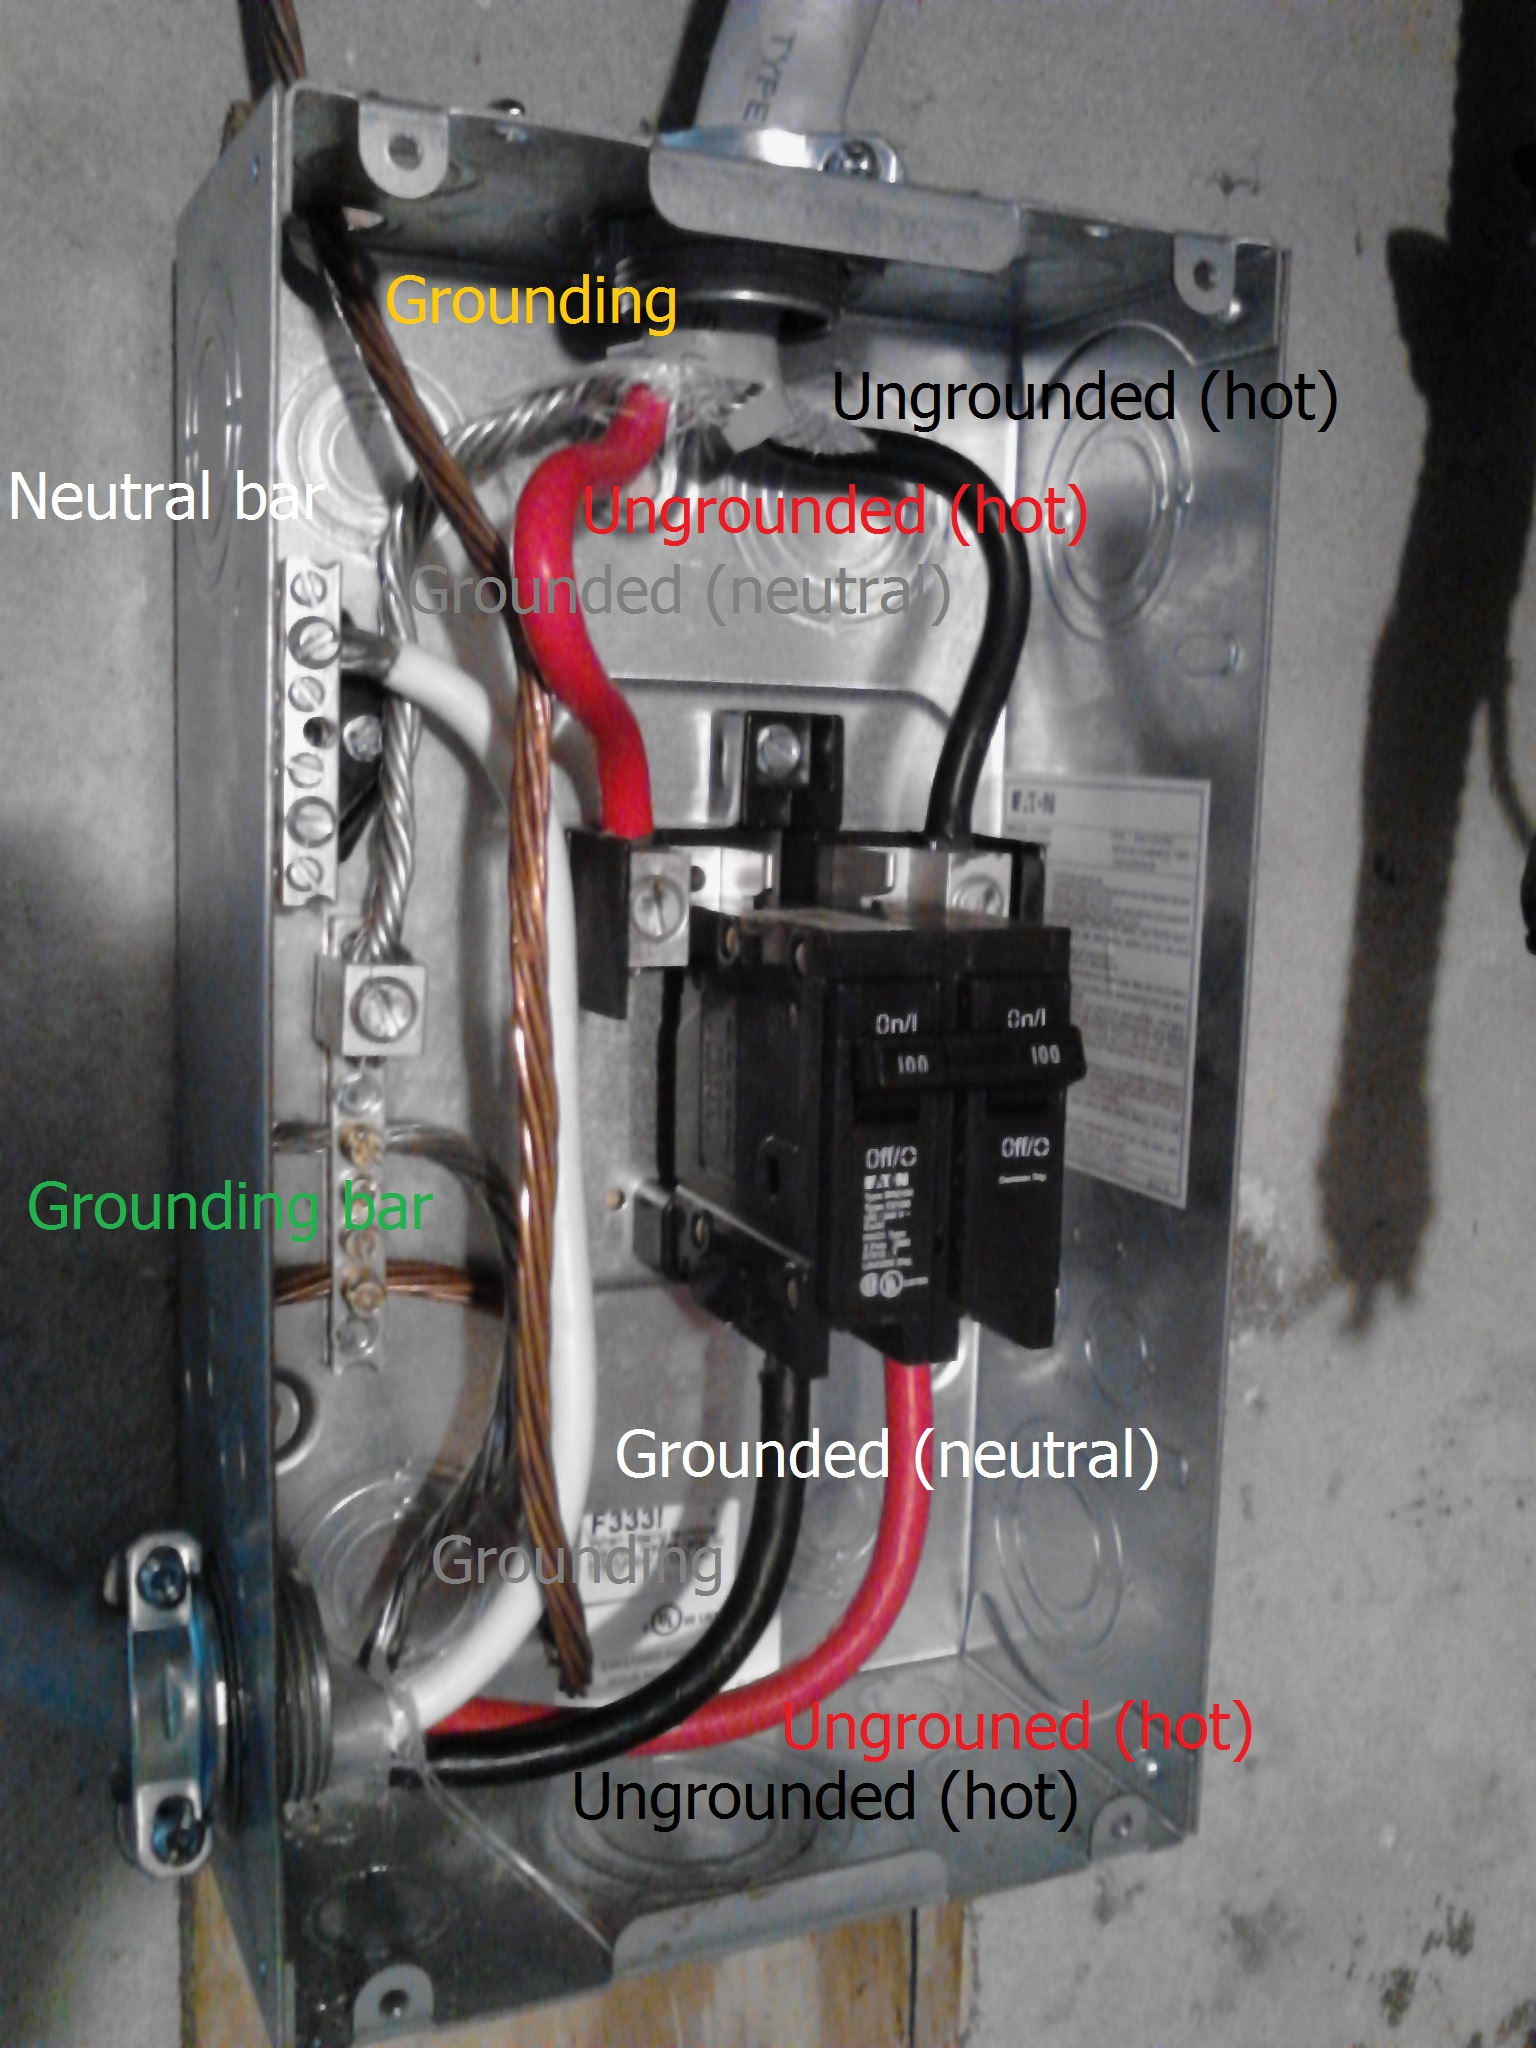 hight resolution of electrical what is wrong with this panel wiring home sub and amp wiring diagram home wiring a sub